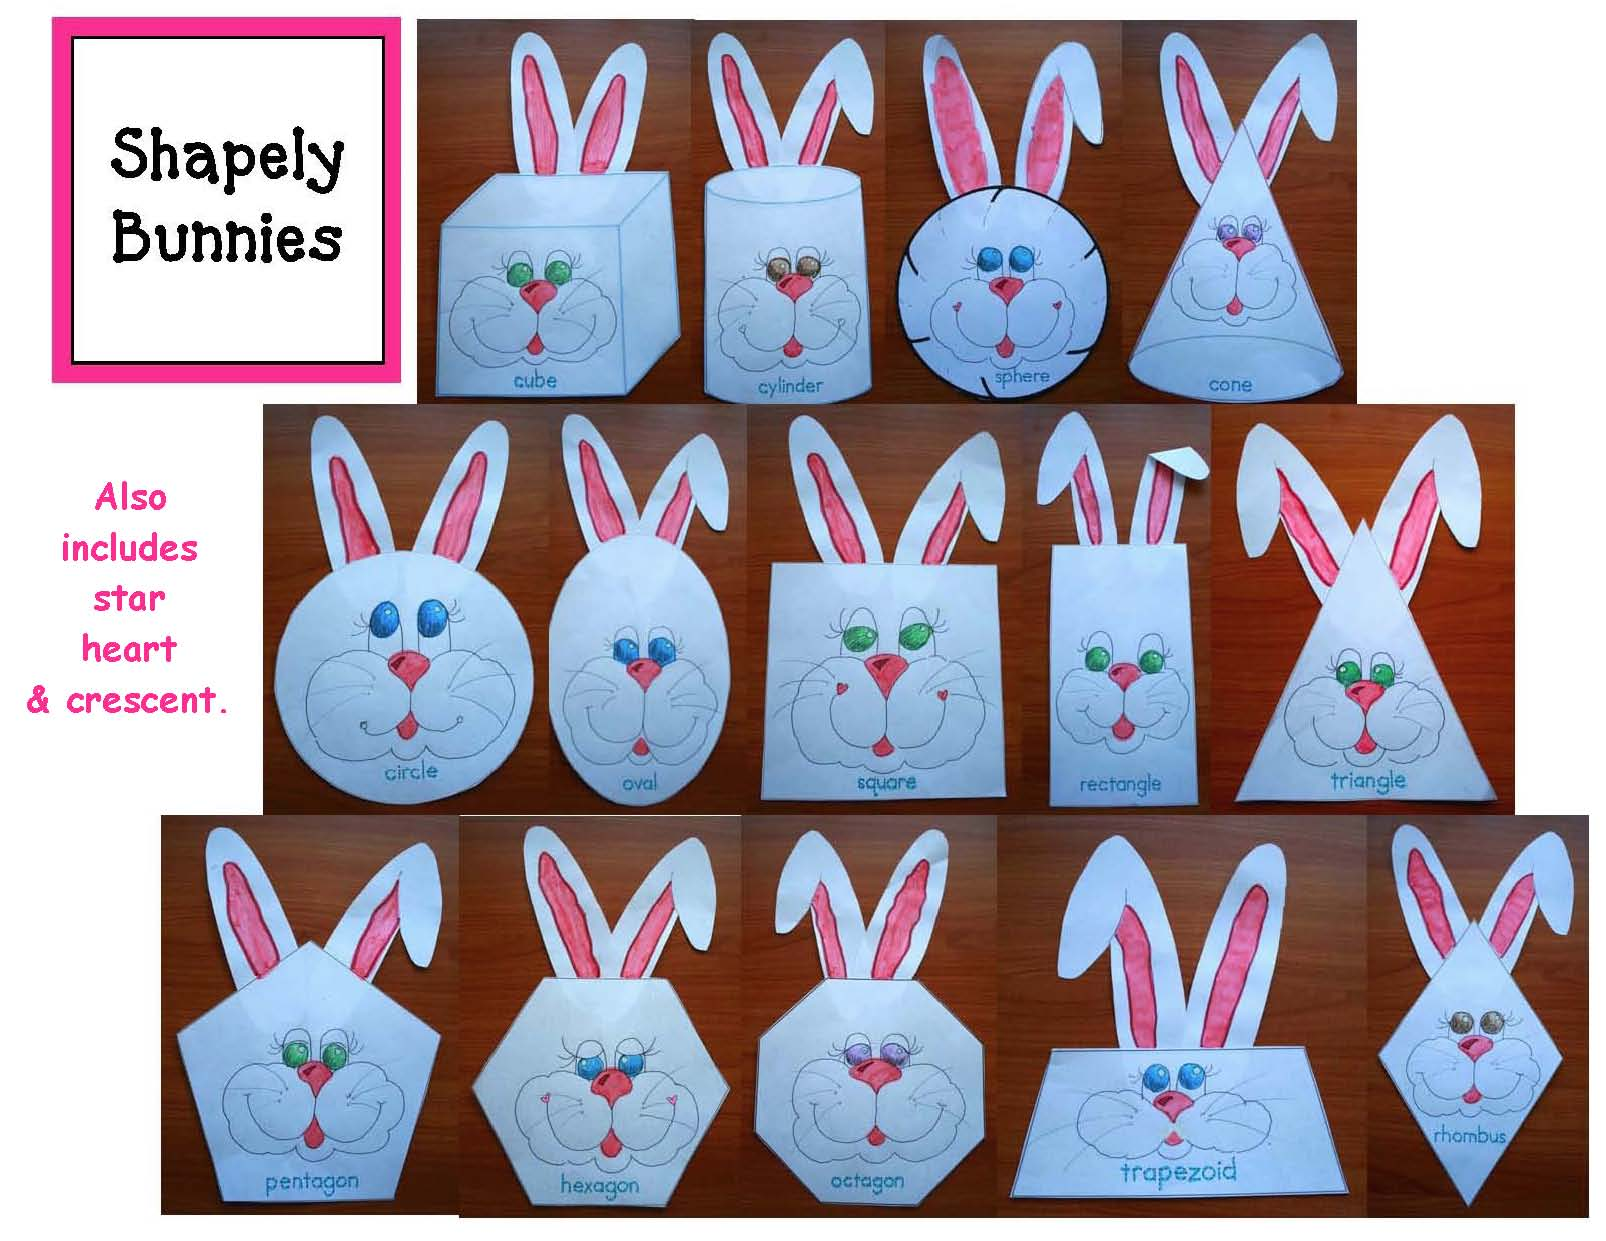 ick word family activities, op word family activities, easter crafts, chick crafts, bunny crafts, 2D shape activities, 2D shape crafts, 3D shape activiteis, 3D shape crafts, hexagon activities